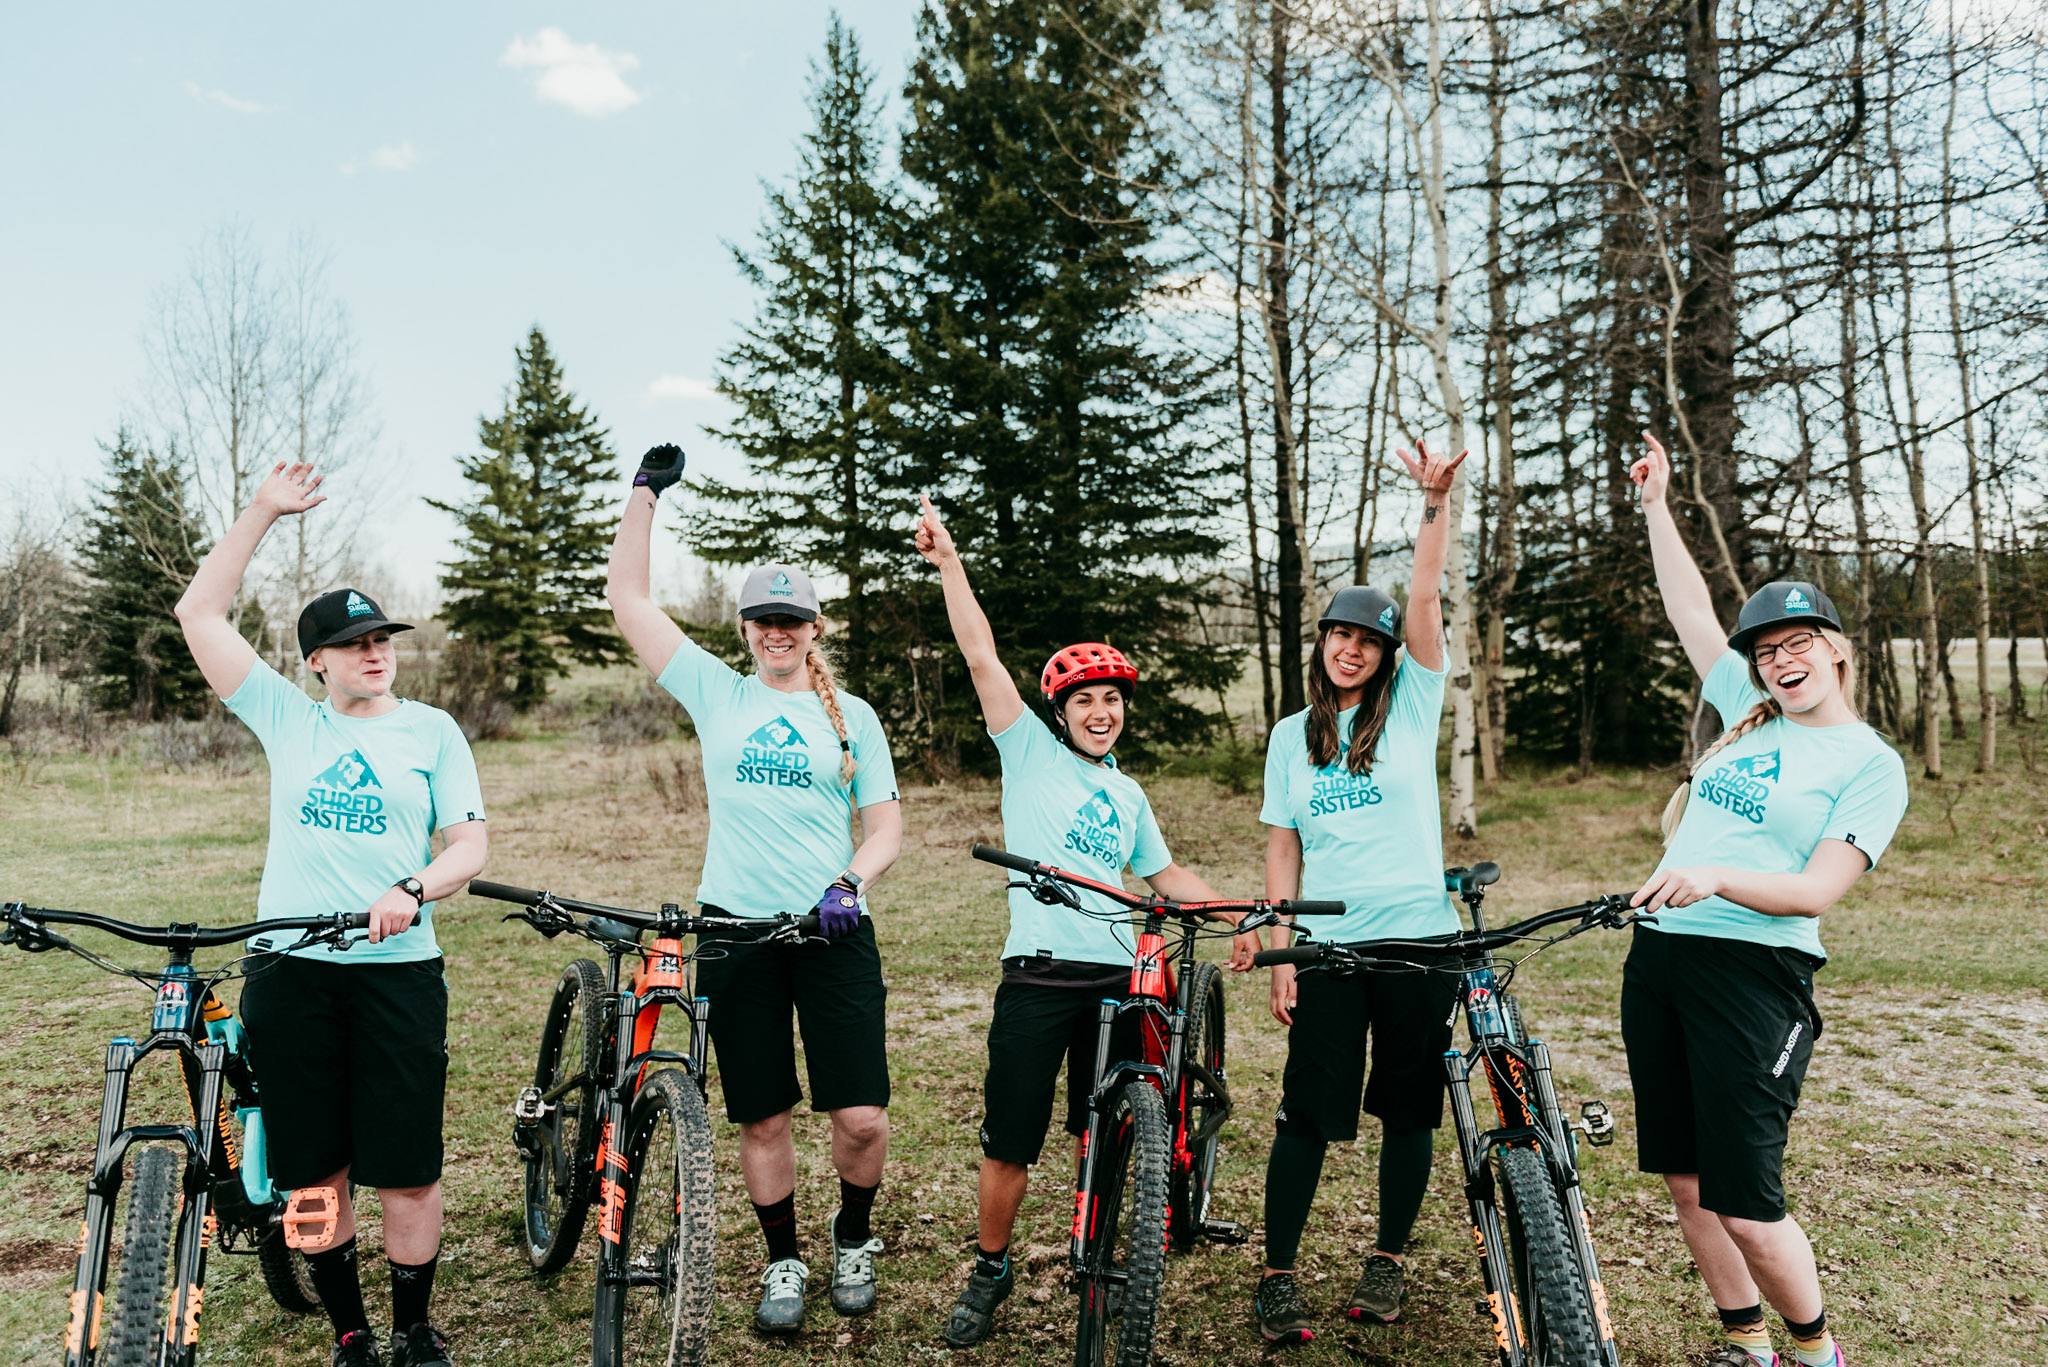 May 27, 2019 - Shred Sisters - Bragg Creek-39.jpg